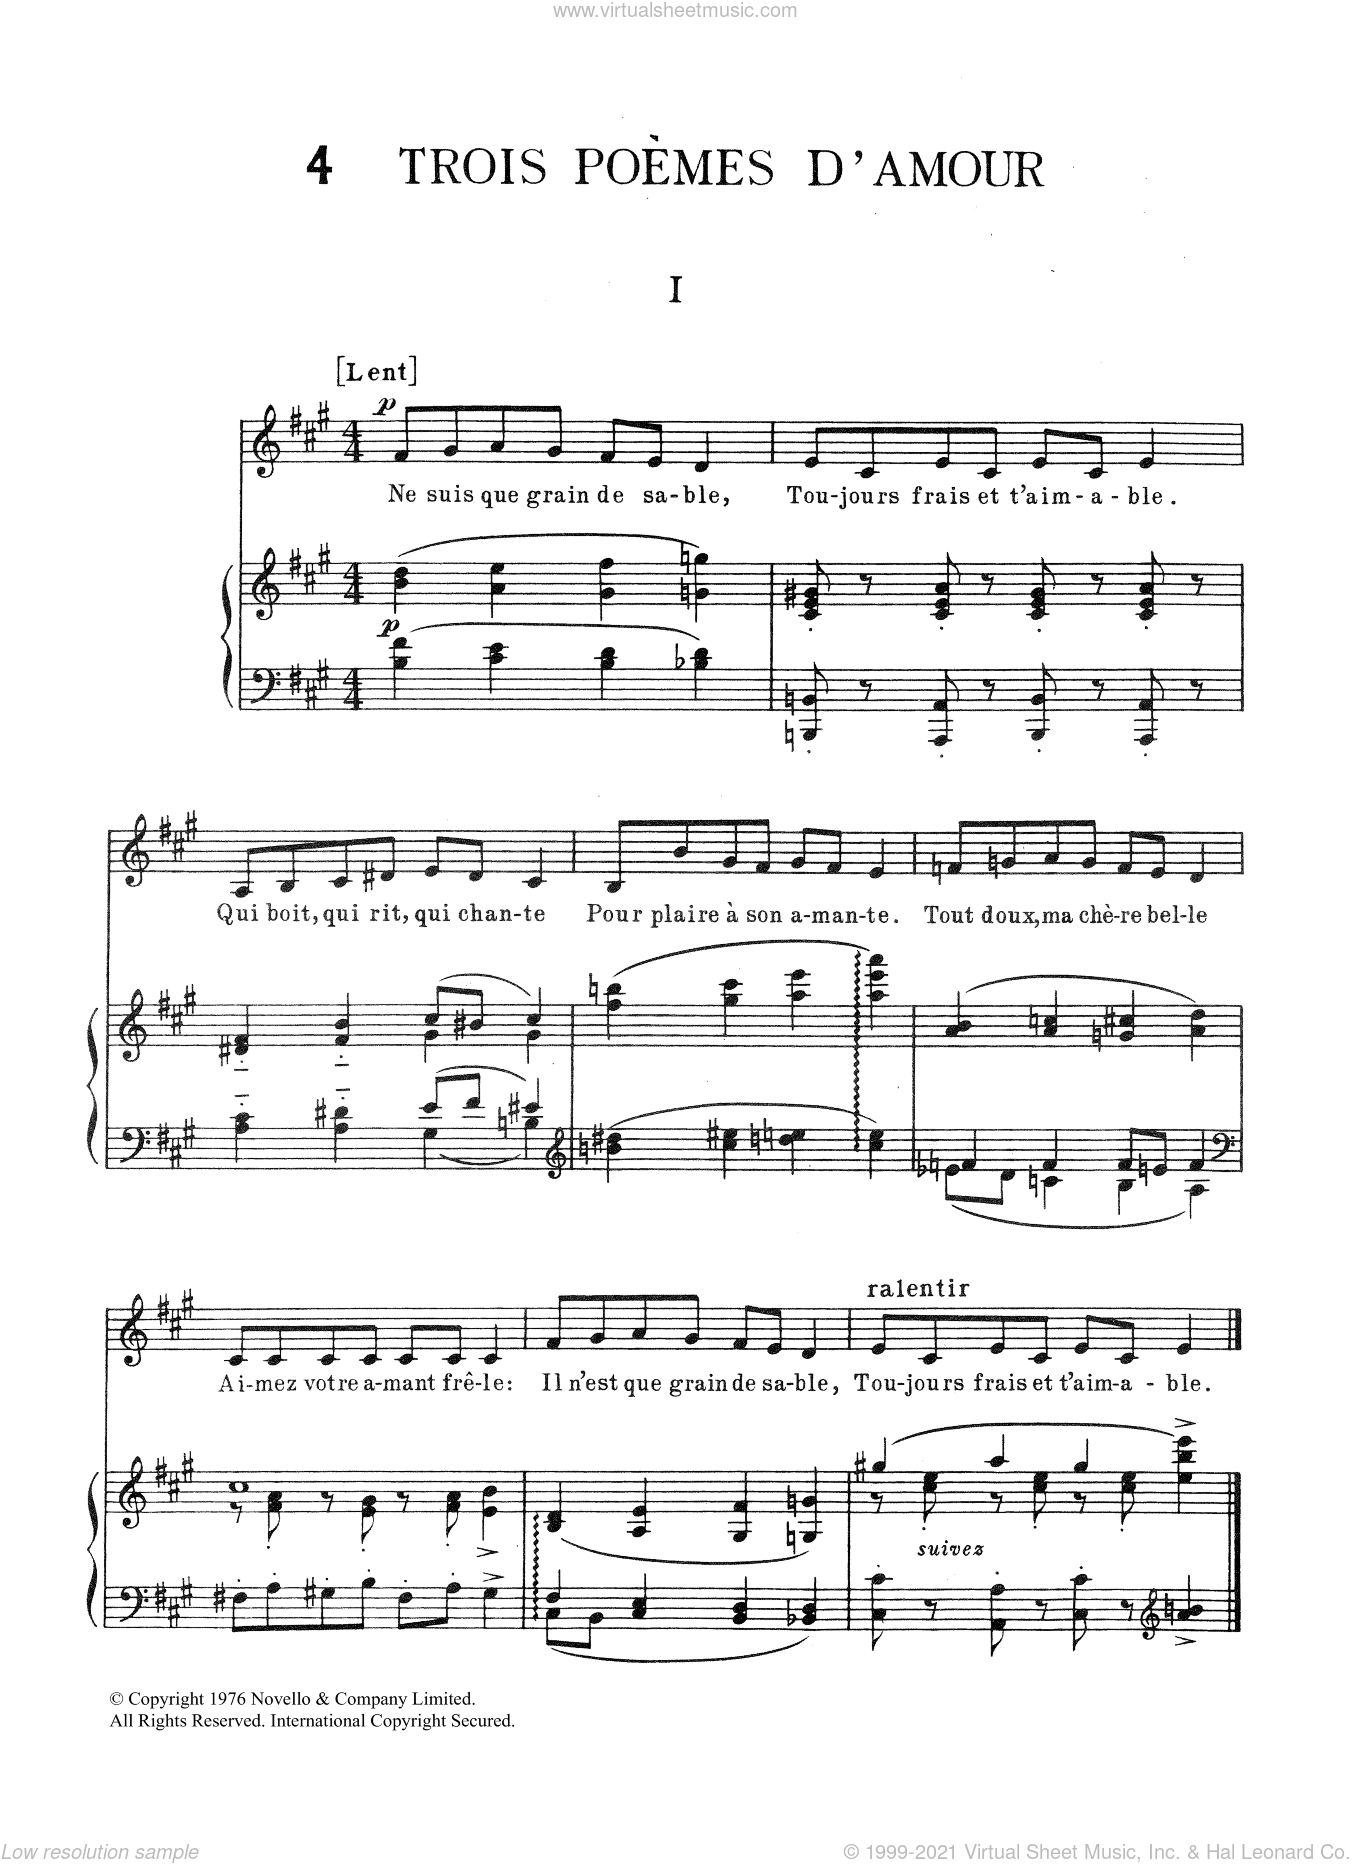 Trois Poemes d'Amour sheet music for piano solo by Erik Satie, classical score, intermediate skill level